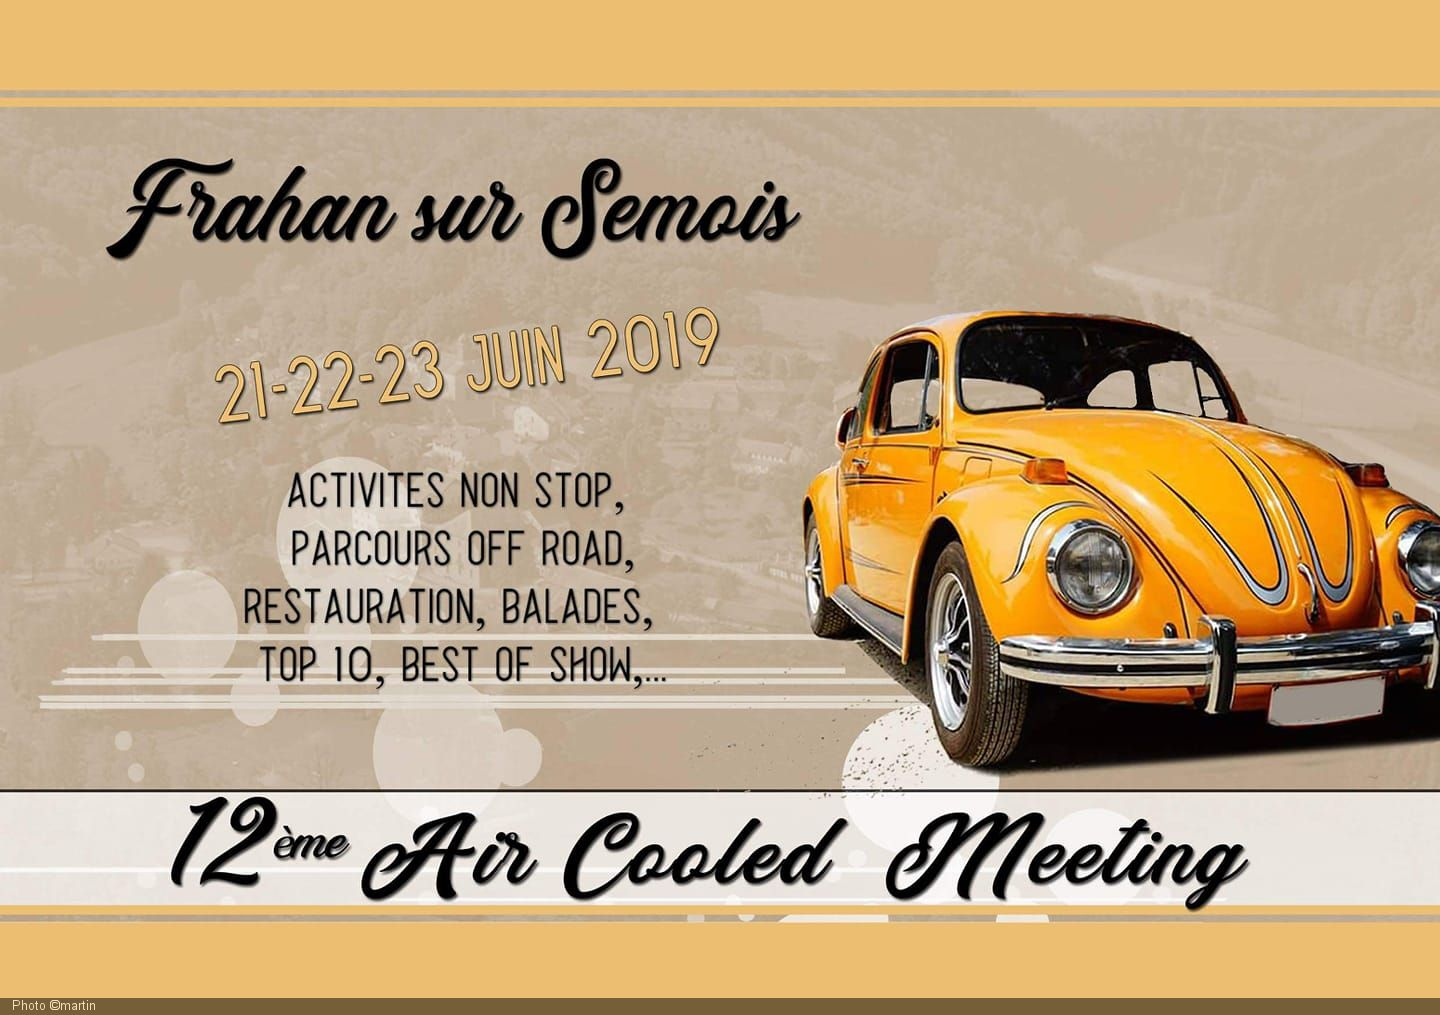 12e Air Cooled Meeting